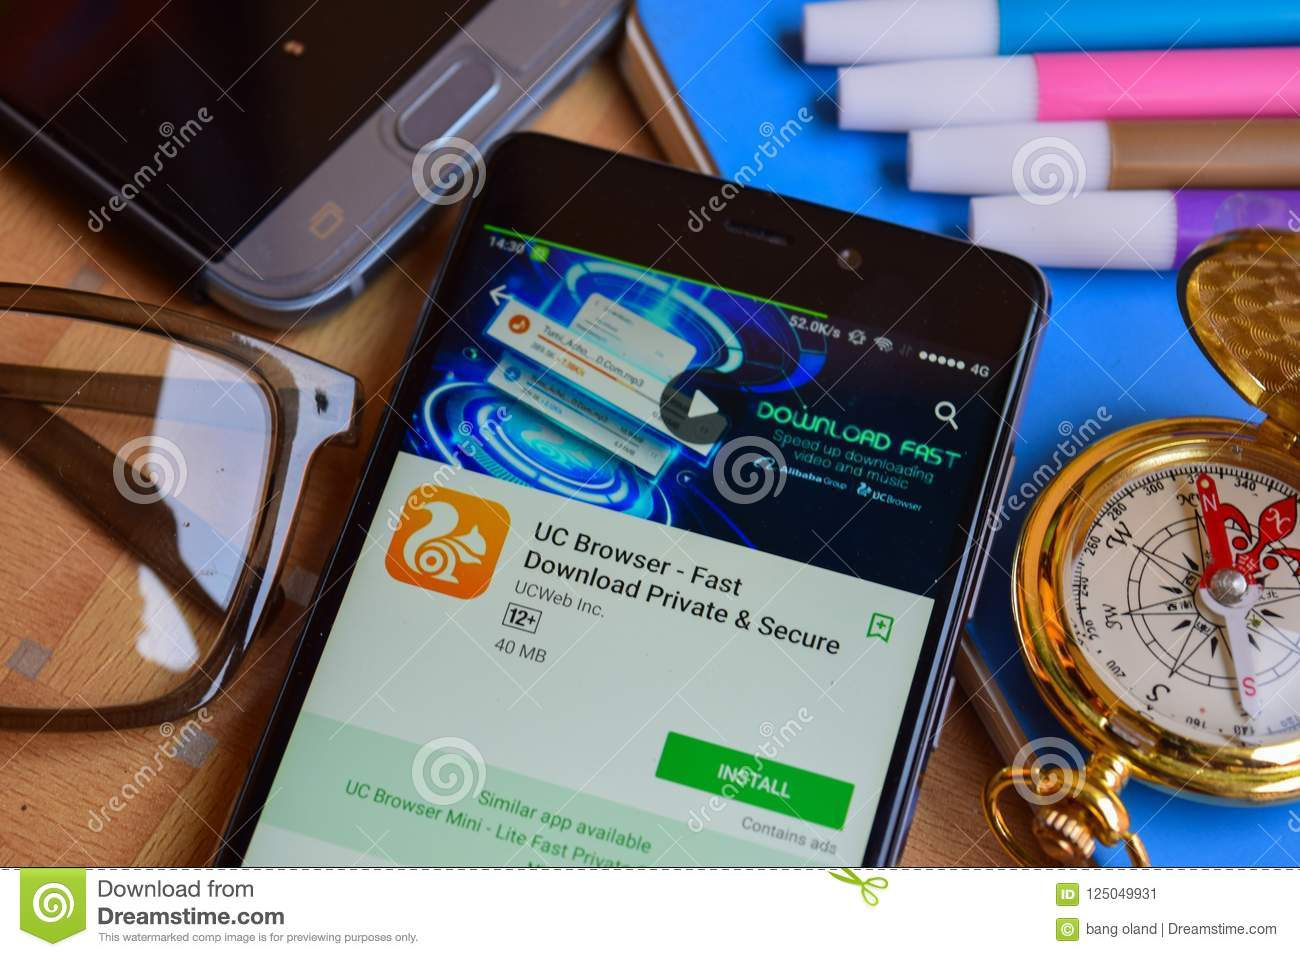 UC Browser - Fast Download Private & Secure Dev App On